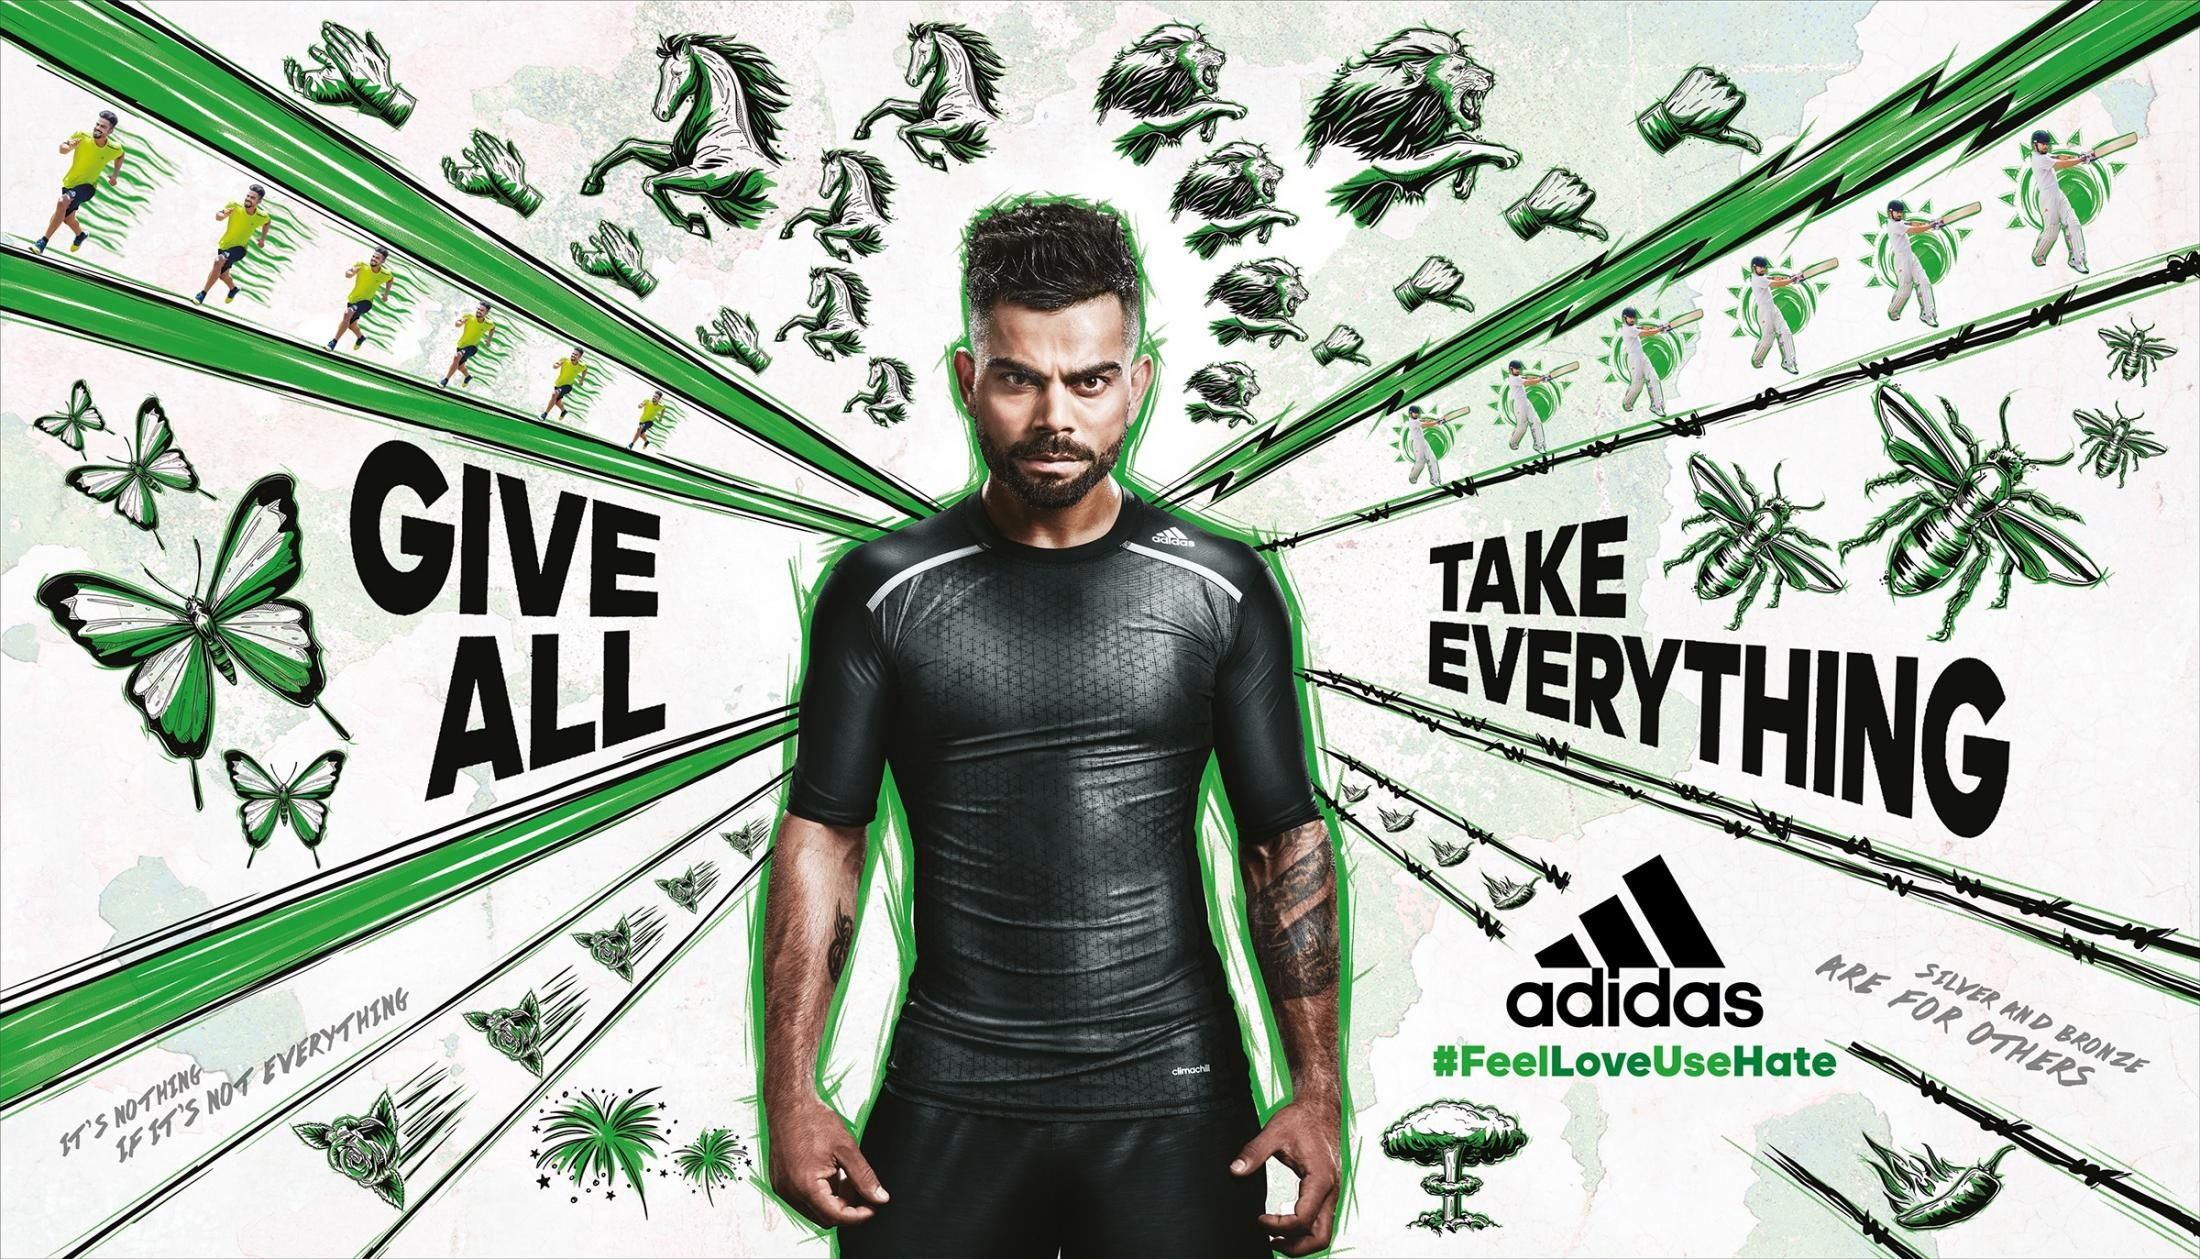 Adidas Green Ads Of The World In 2020 Advertising Campaign Adidas Adidas Ad